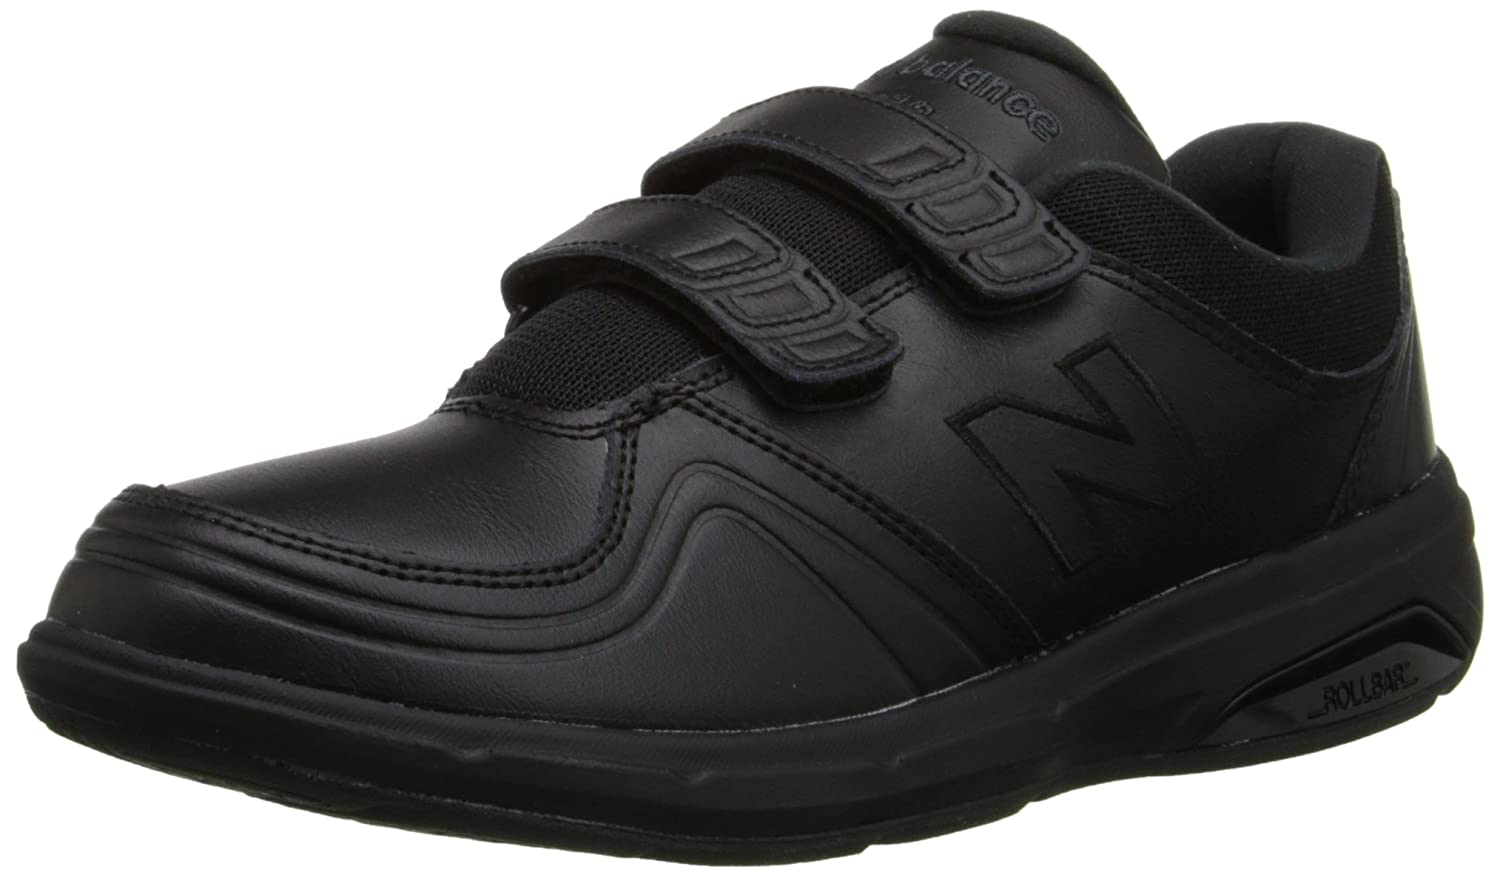 New Balance Womens WW813 Hook and Loop Walking Shoe 8 D US WW813HBK Black